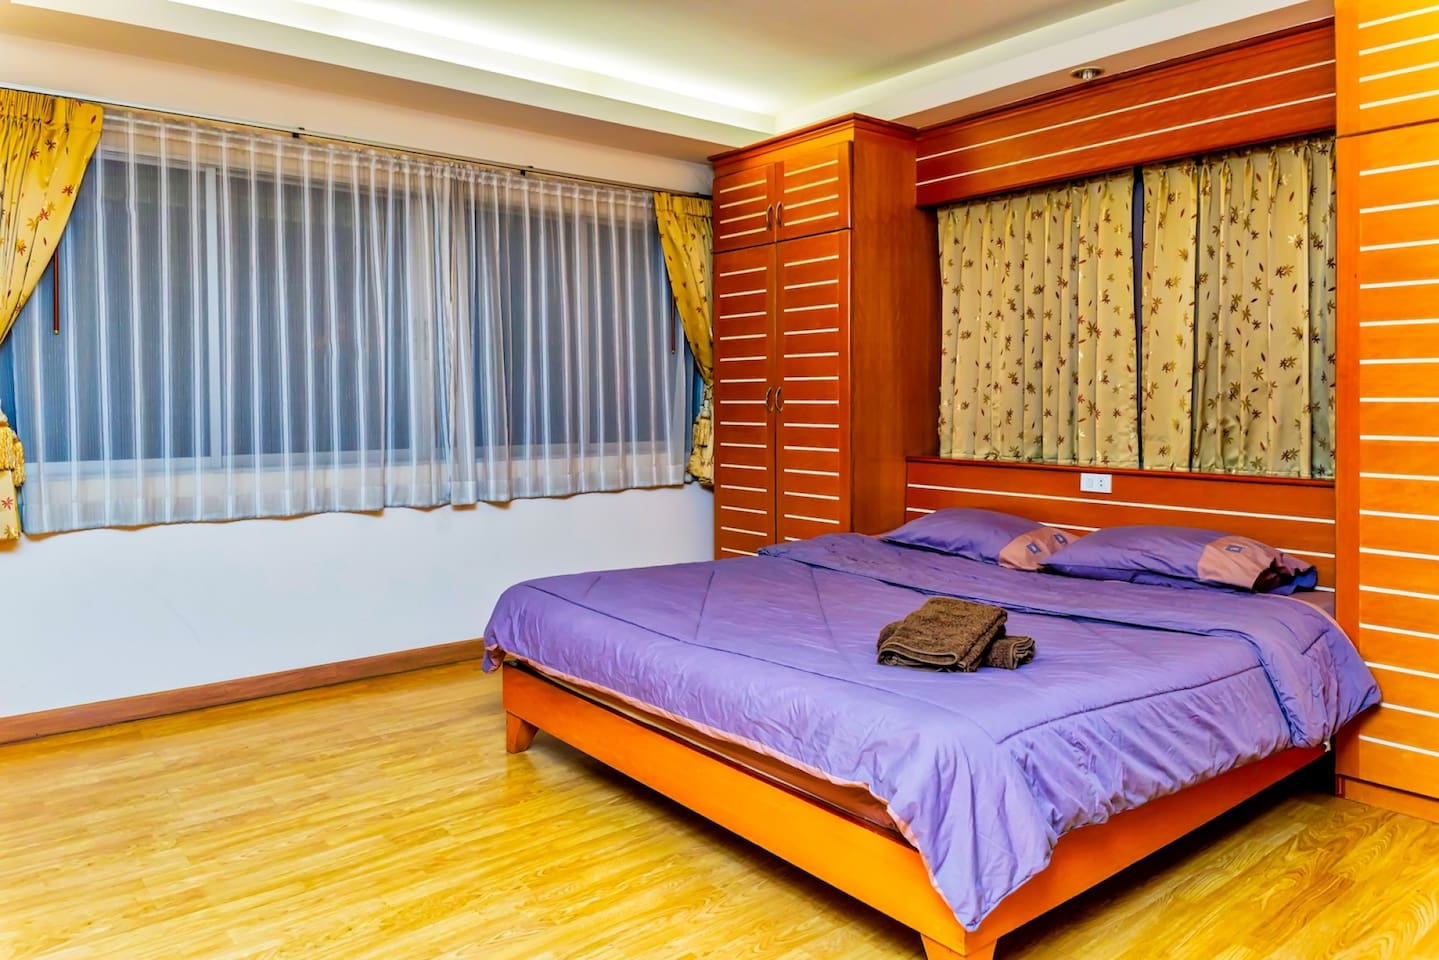 Apartment New 5 King Room in the Center of Pattaya City  Best area  photo 18752407